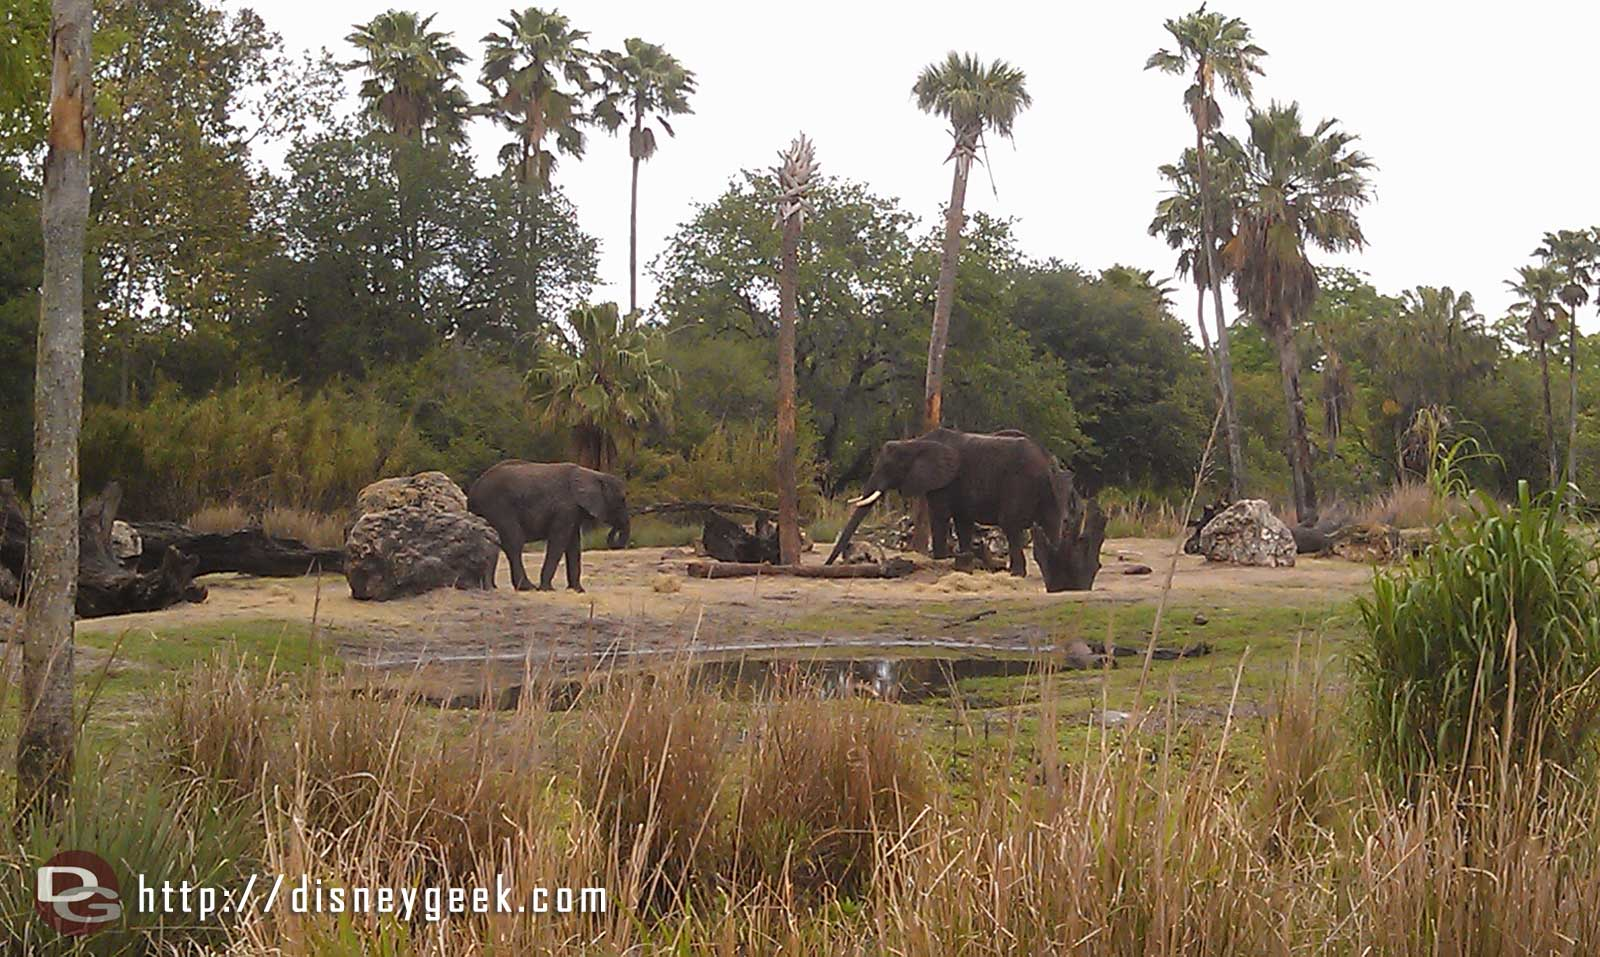 Spotted some elephants #DAK15